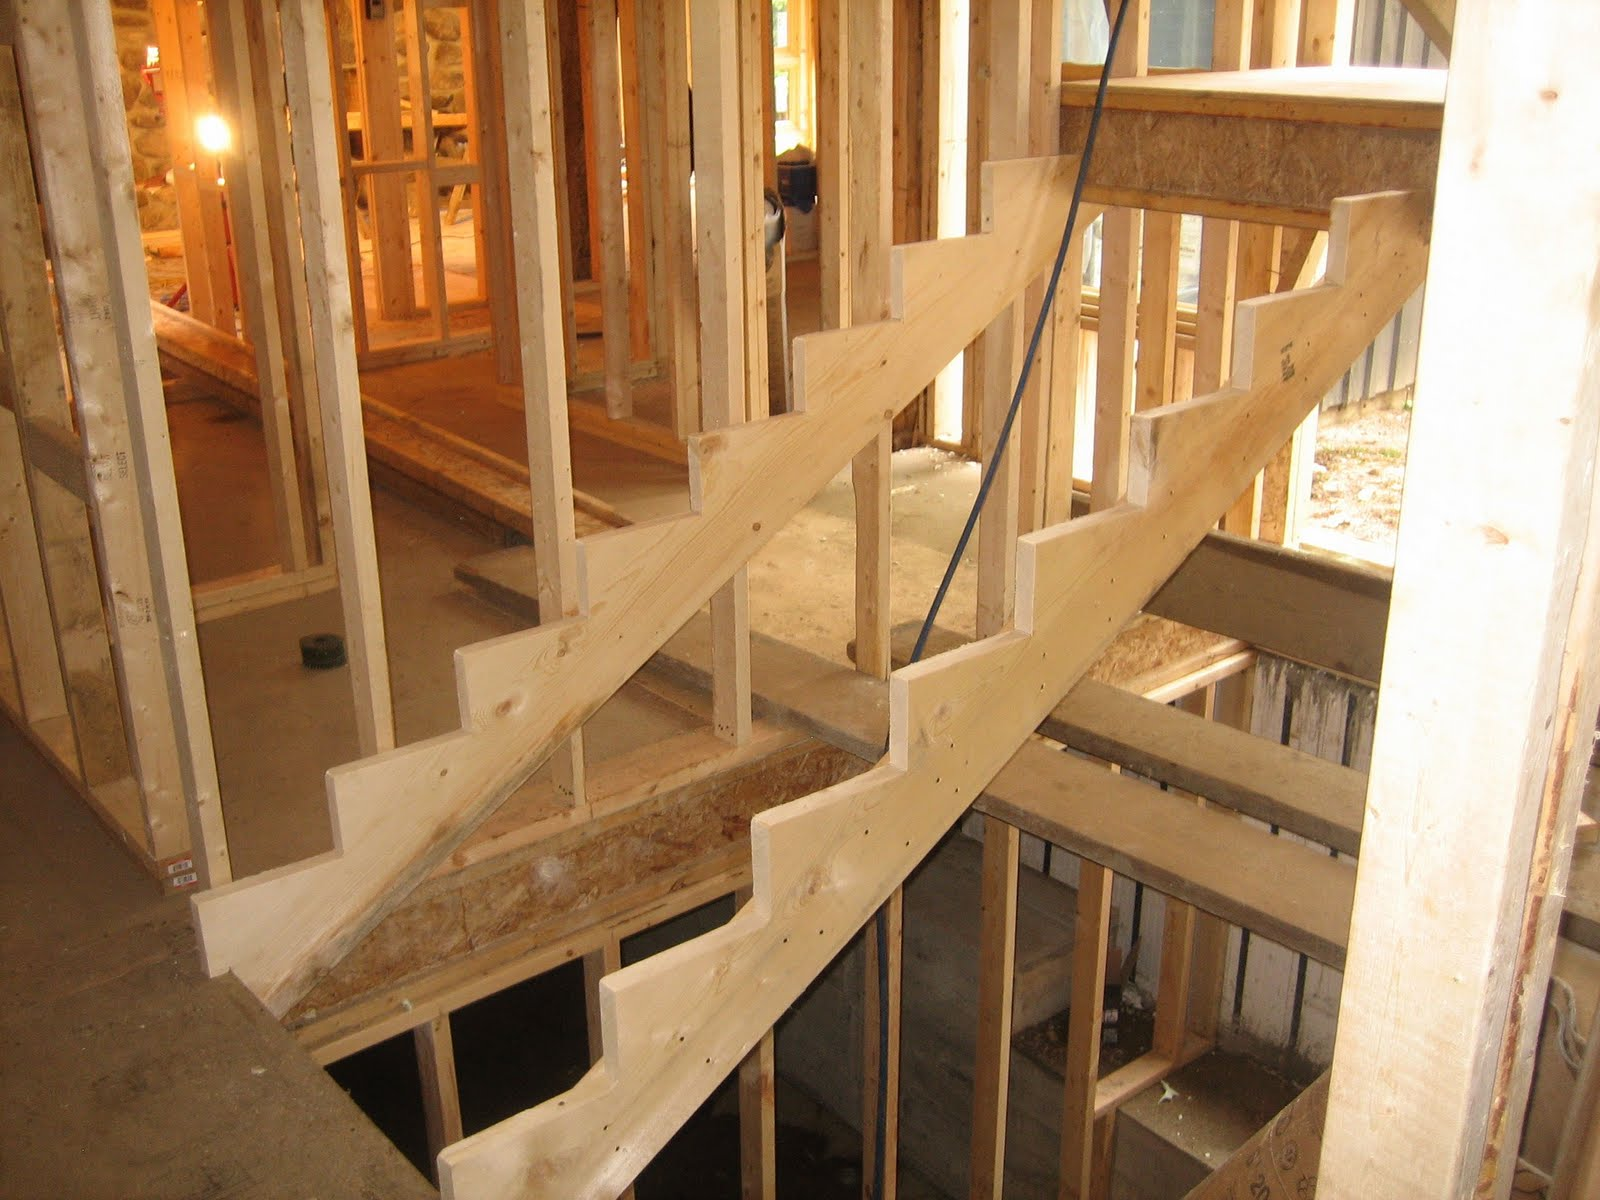 Hang Bottom Of Stair Stringers Below Floor With Joist